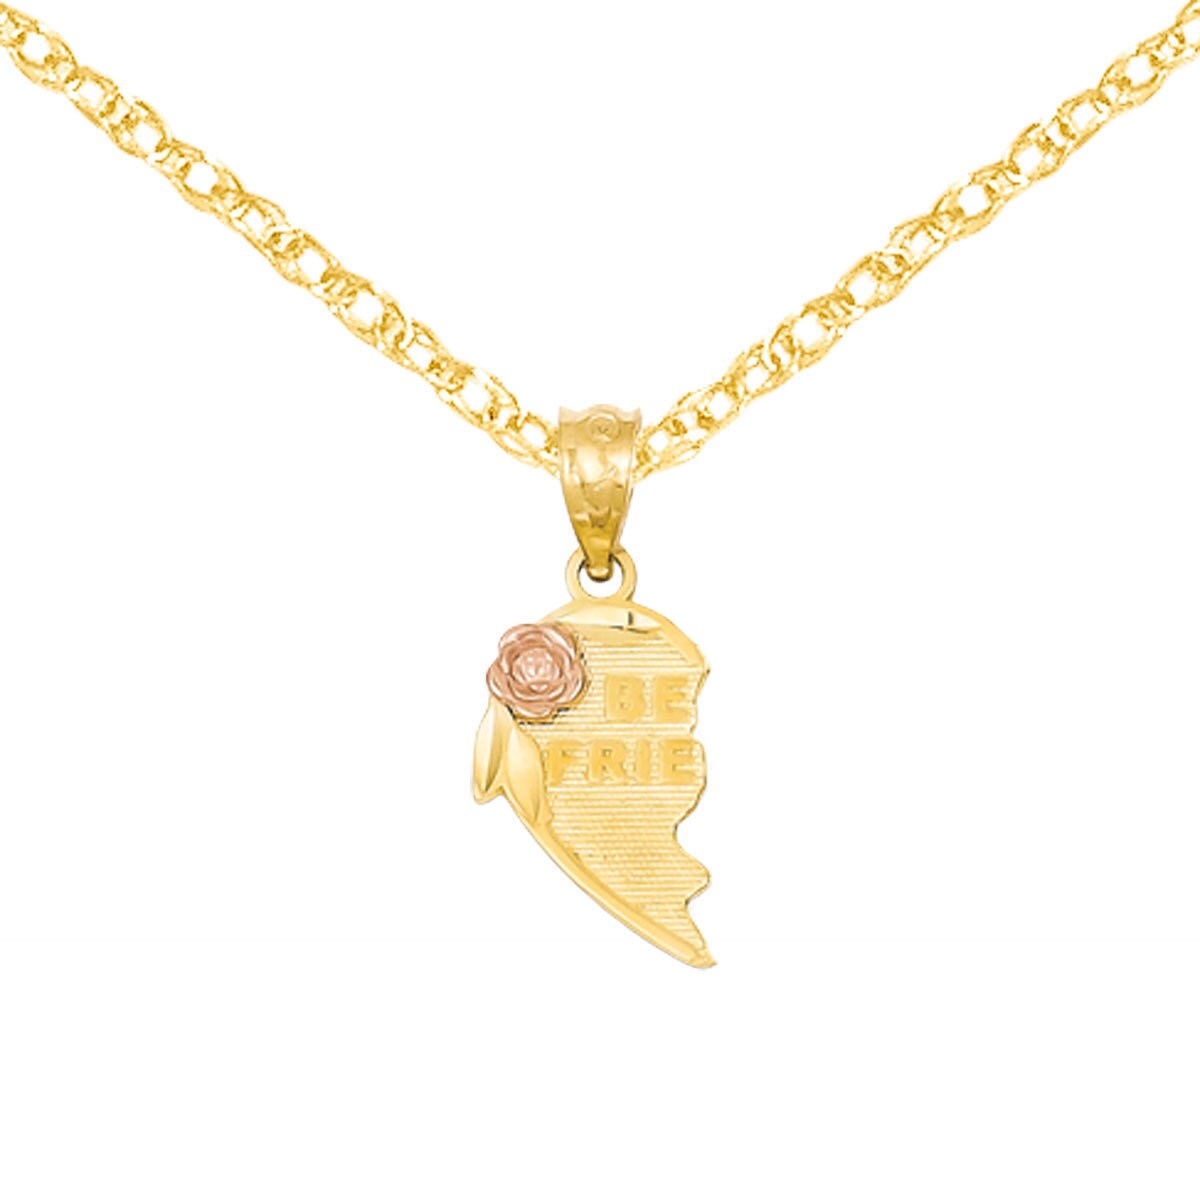 14K Two Tone Gold Fancy Design Heart Charm Pendant For Necklace or Chain